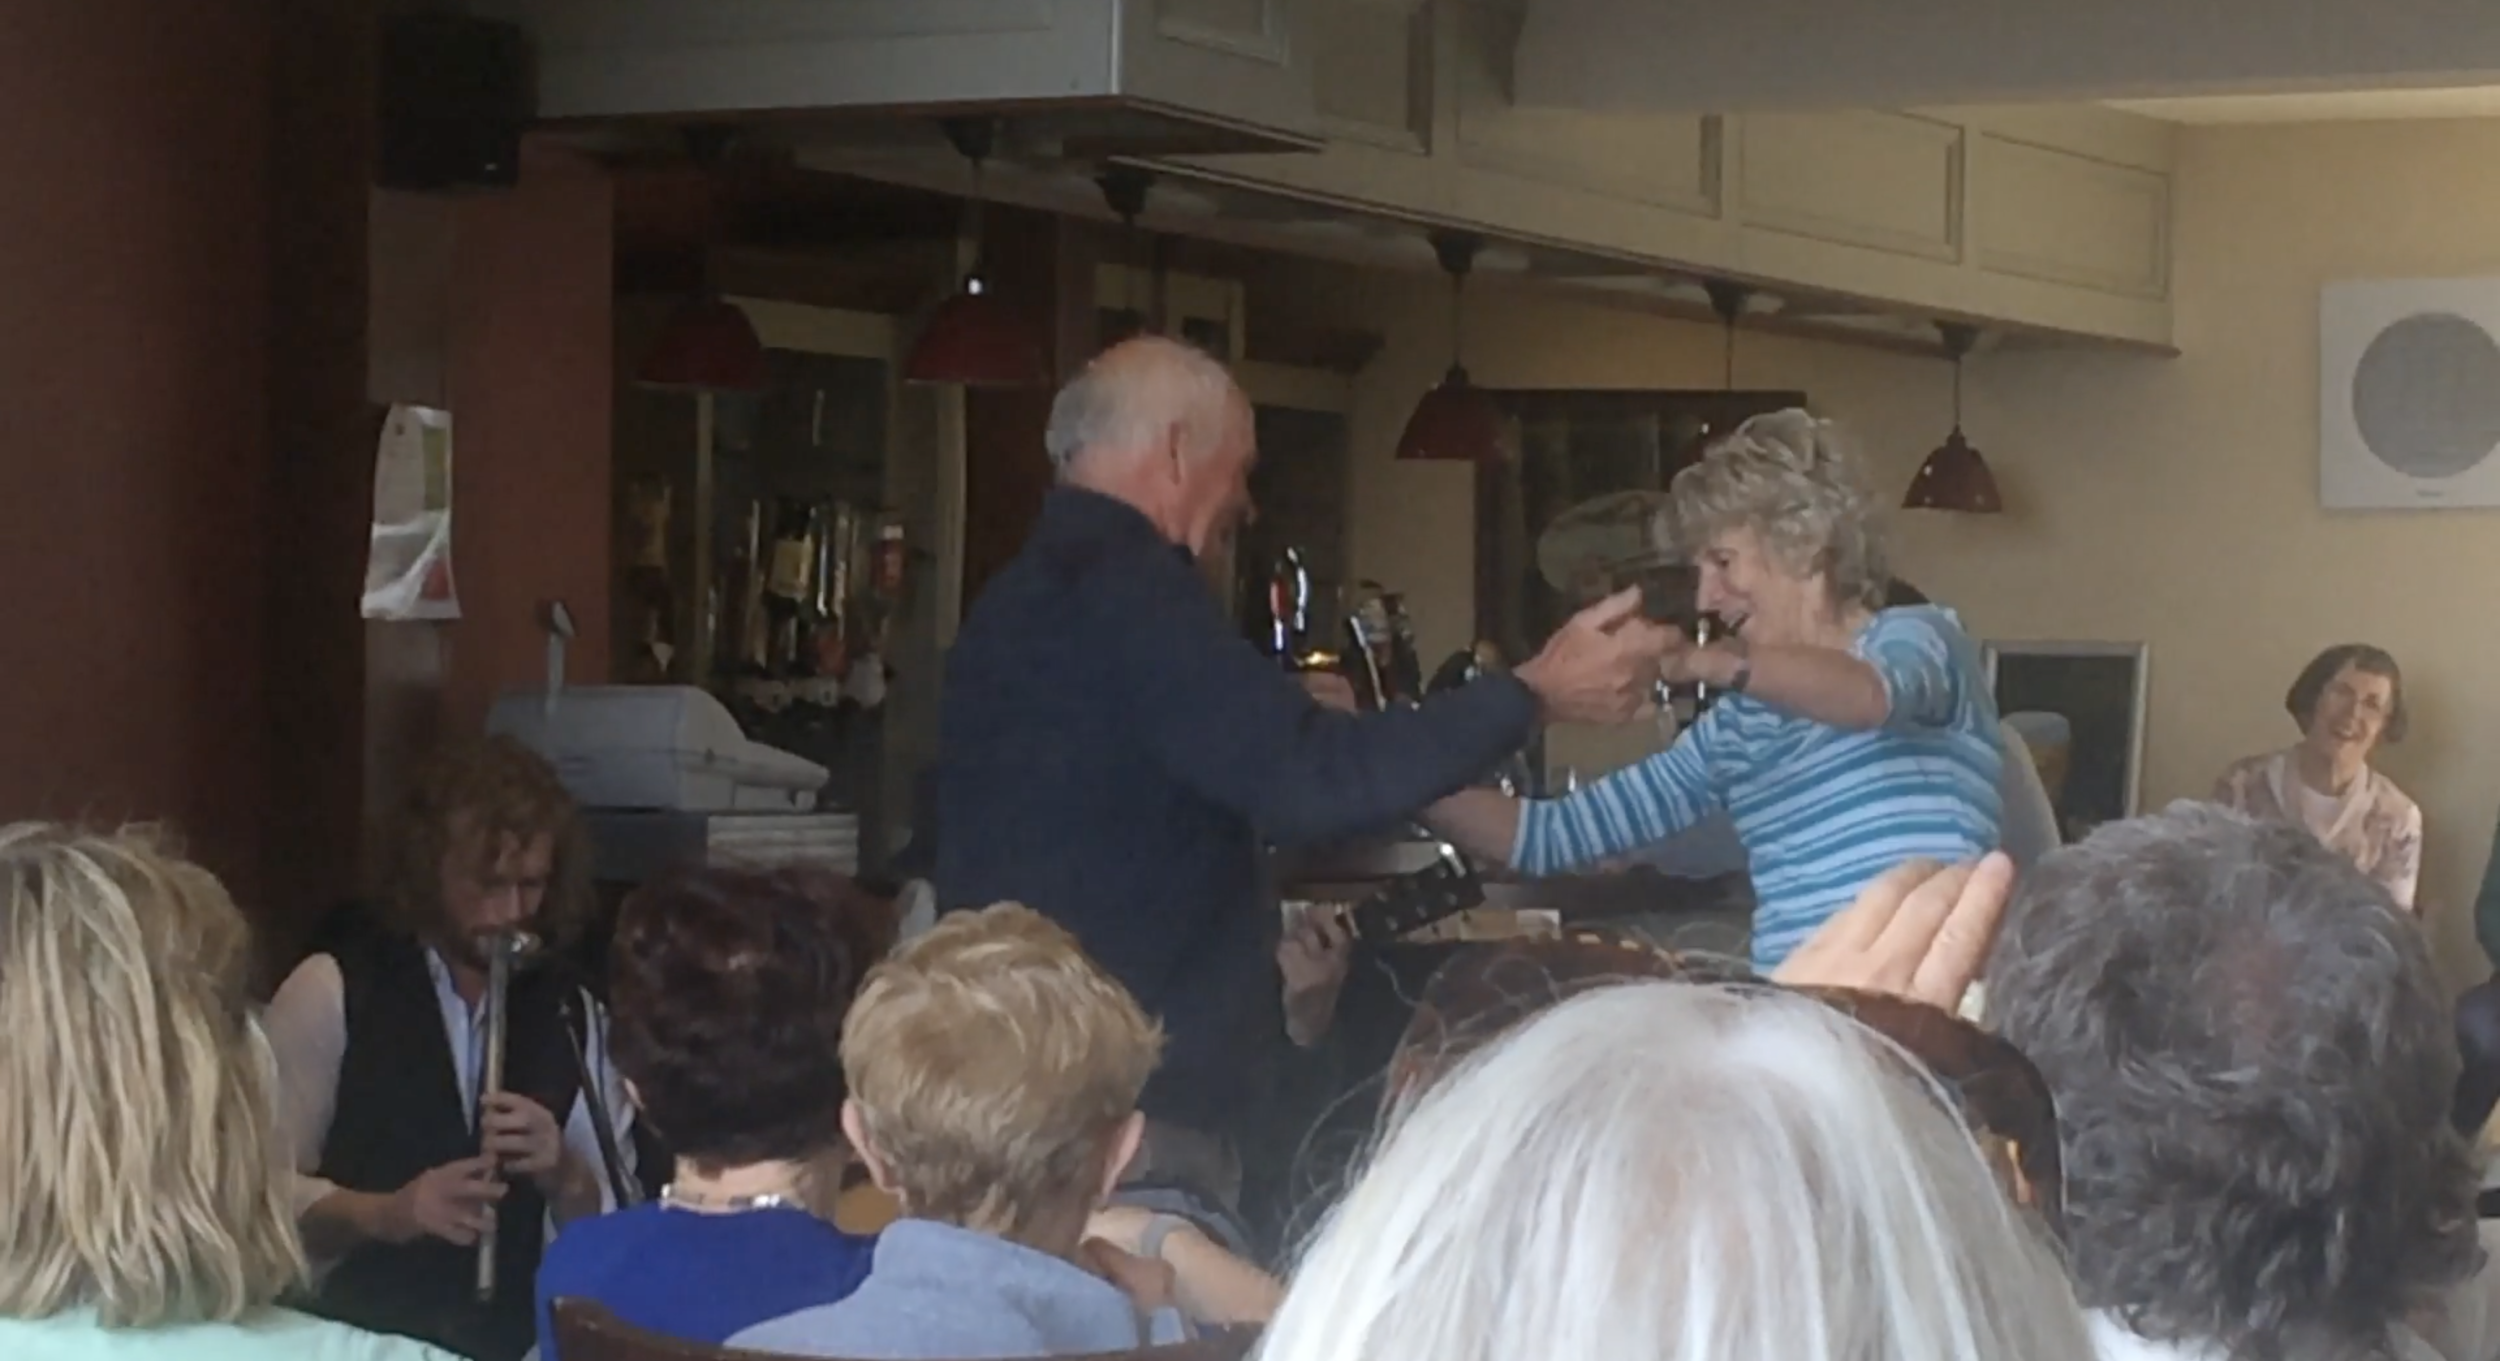 This power Irish couple literally danced for ages. They had an absolute blast dancing together like crazy, it was beautiful to see. Real love.